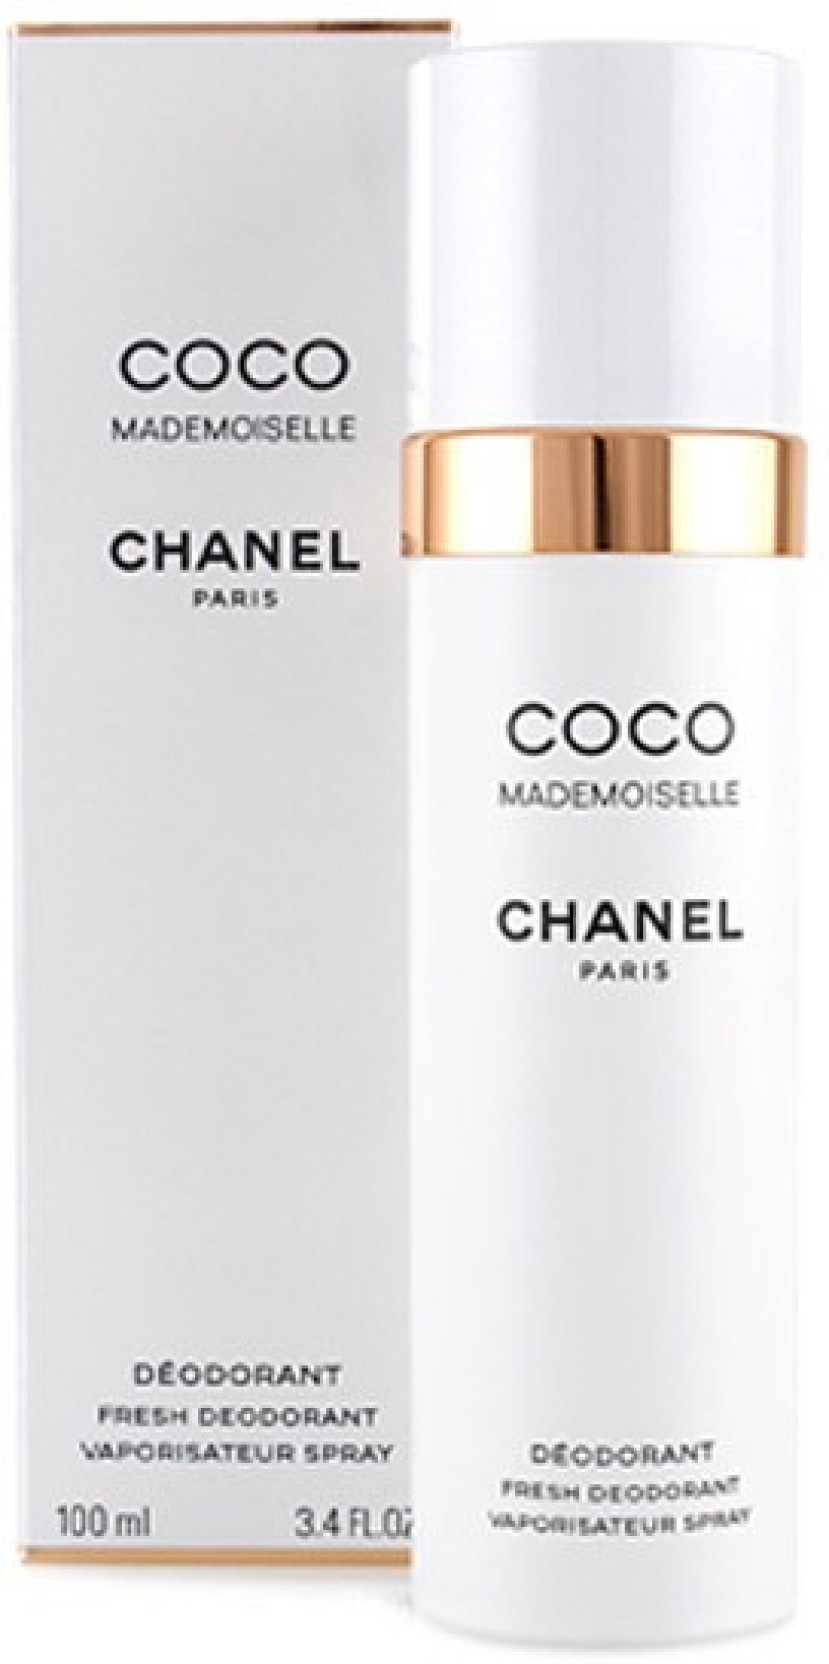 c2af0ad8870 Chanel Coco Mademoiselle Deodorant Spray - For Women - Price in ...